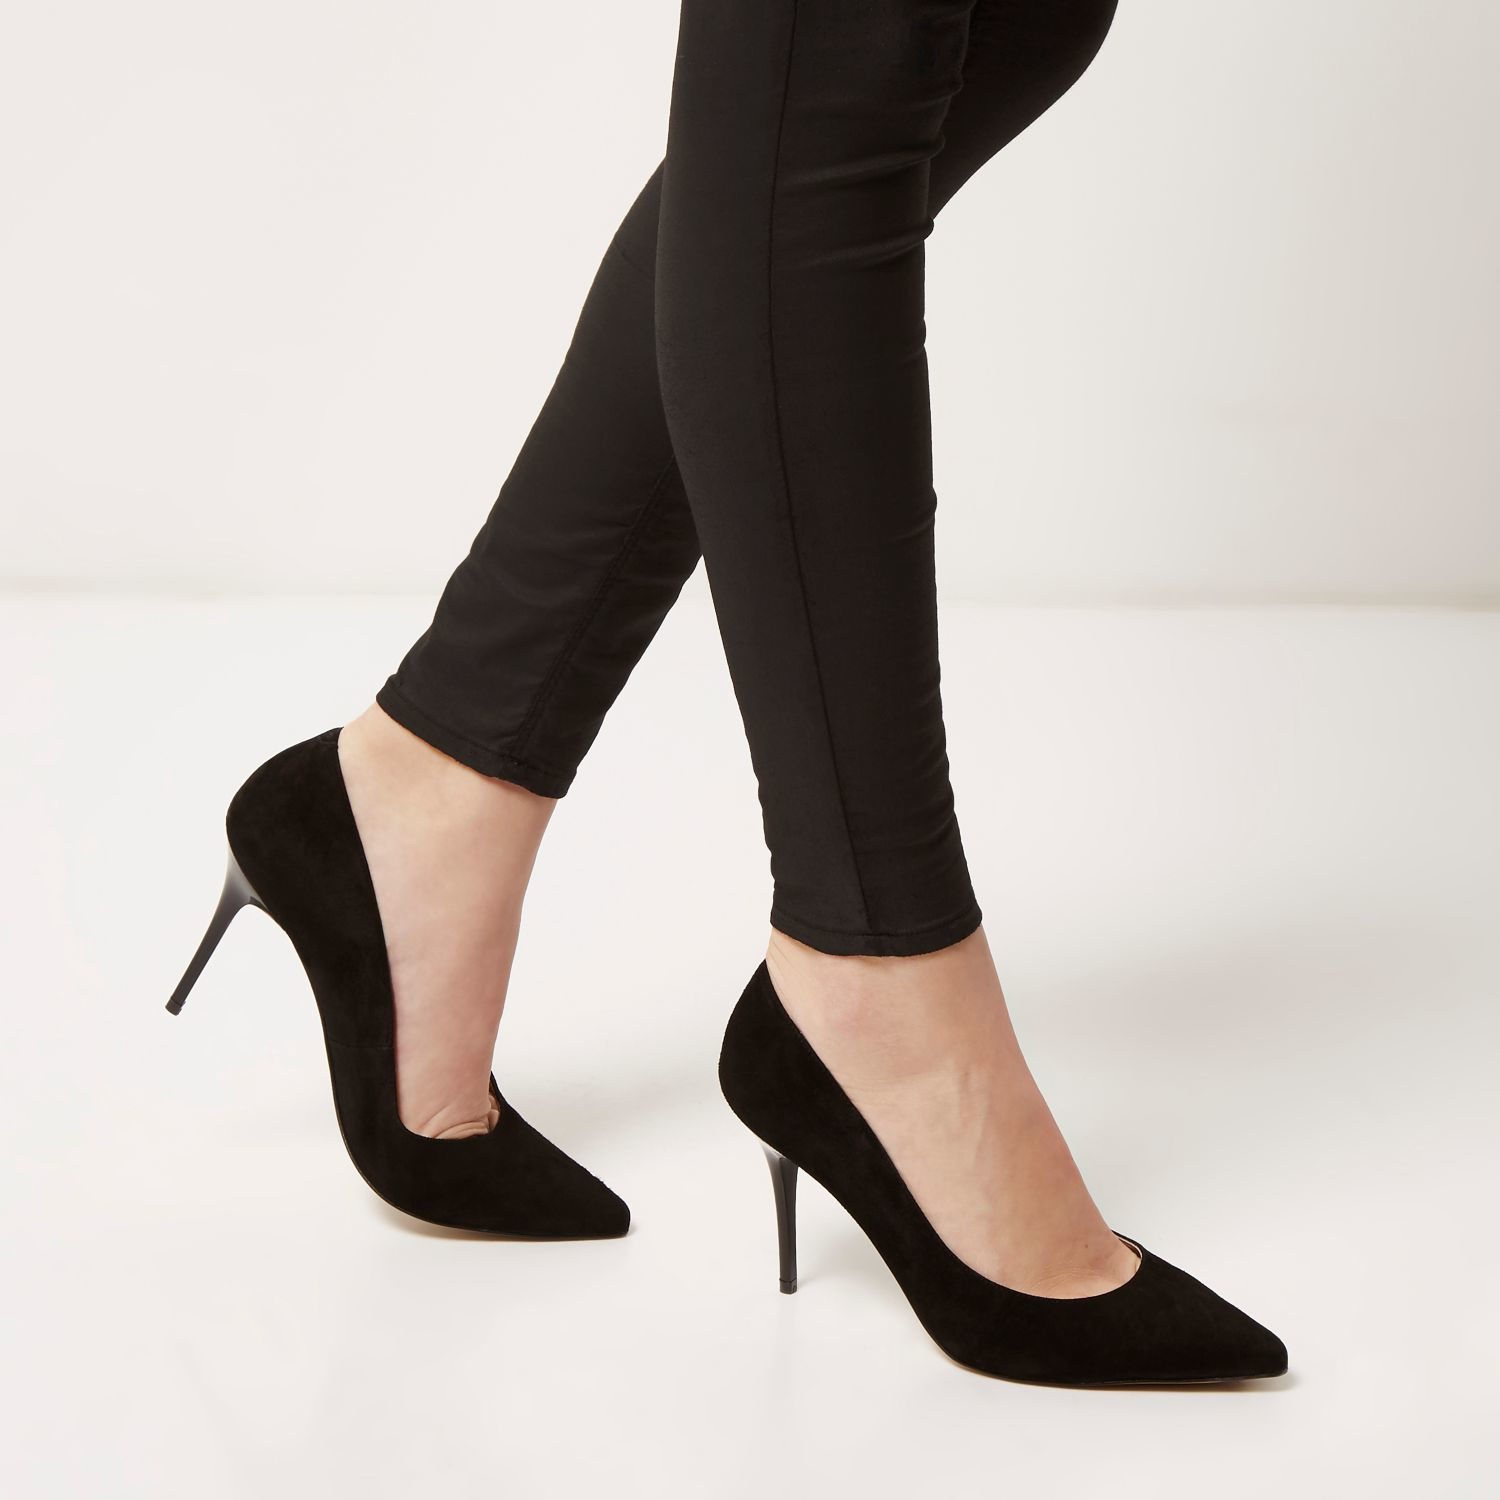 ae495e90adb River Island - Black Suede Pointed Mid Heel Court Shoes - Lyst